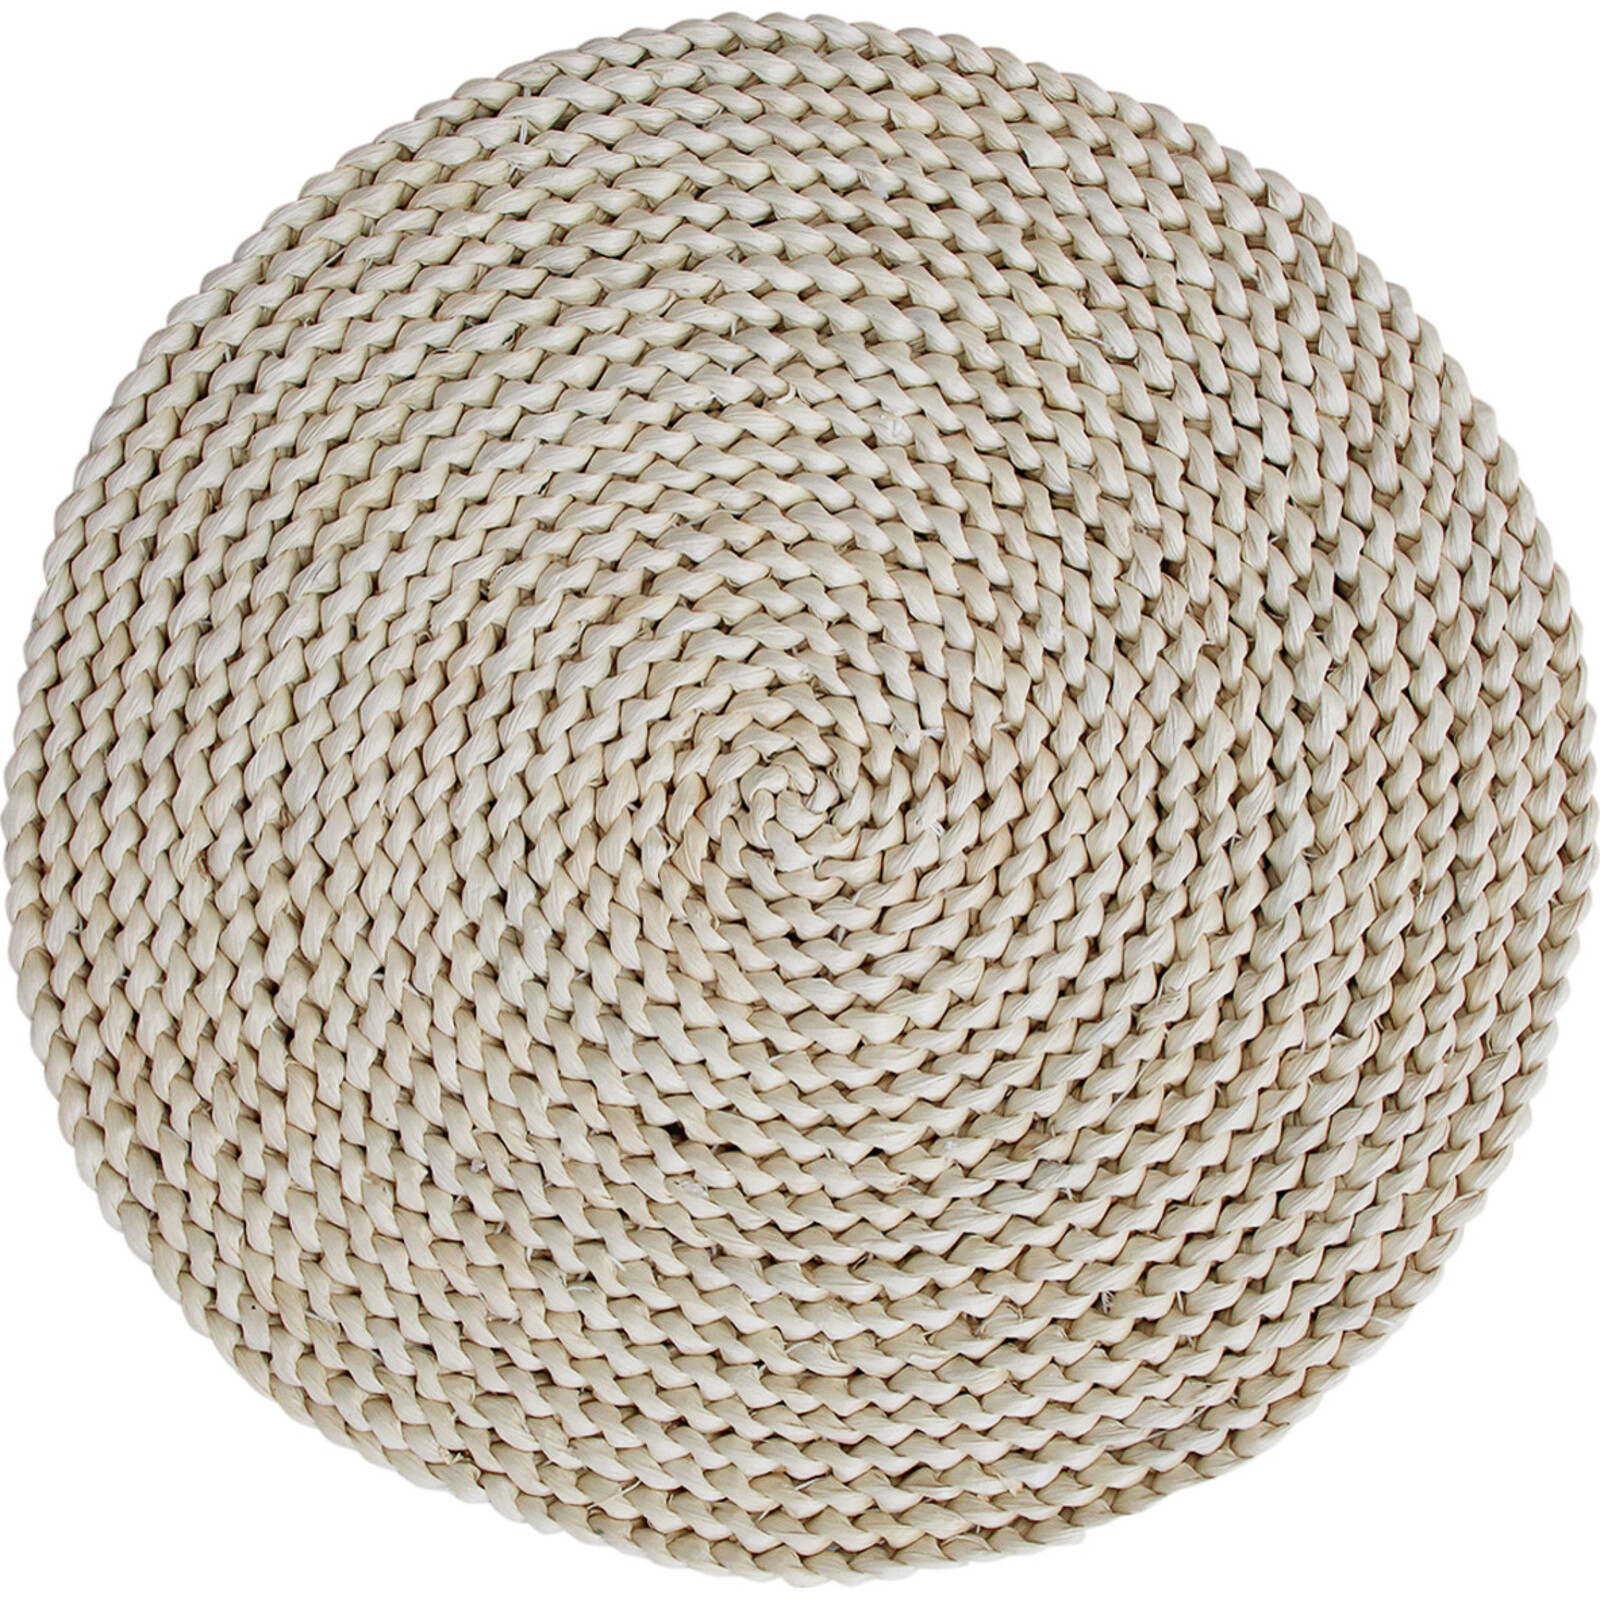 Woven Placemat Husk